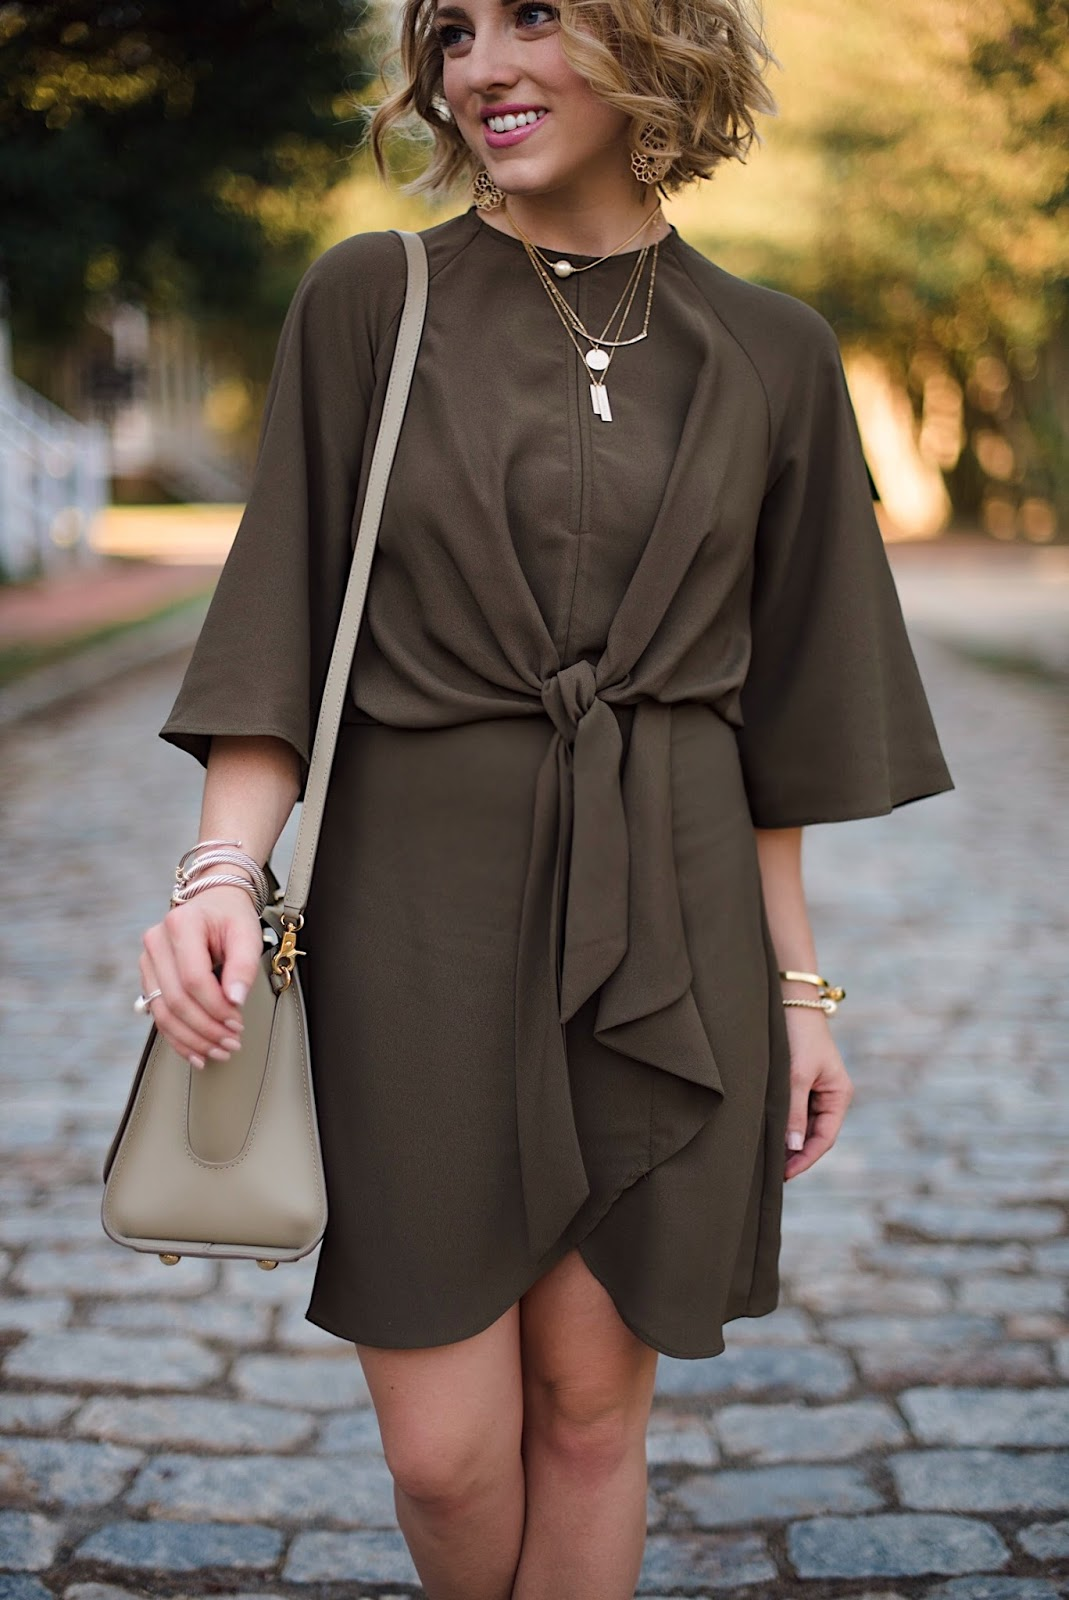 Topshop Tie Front Olive Green Dress - Something Deilghtful Blog